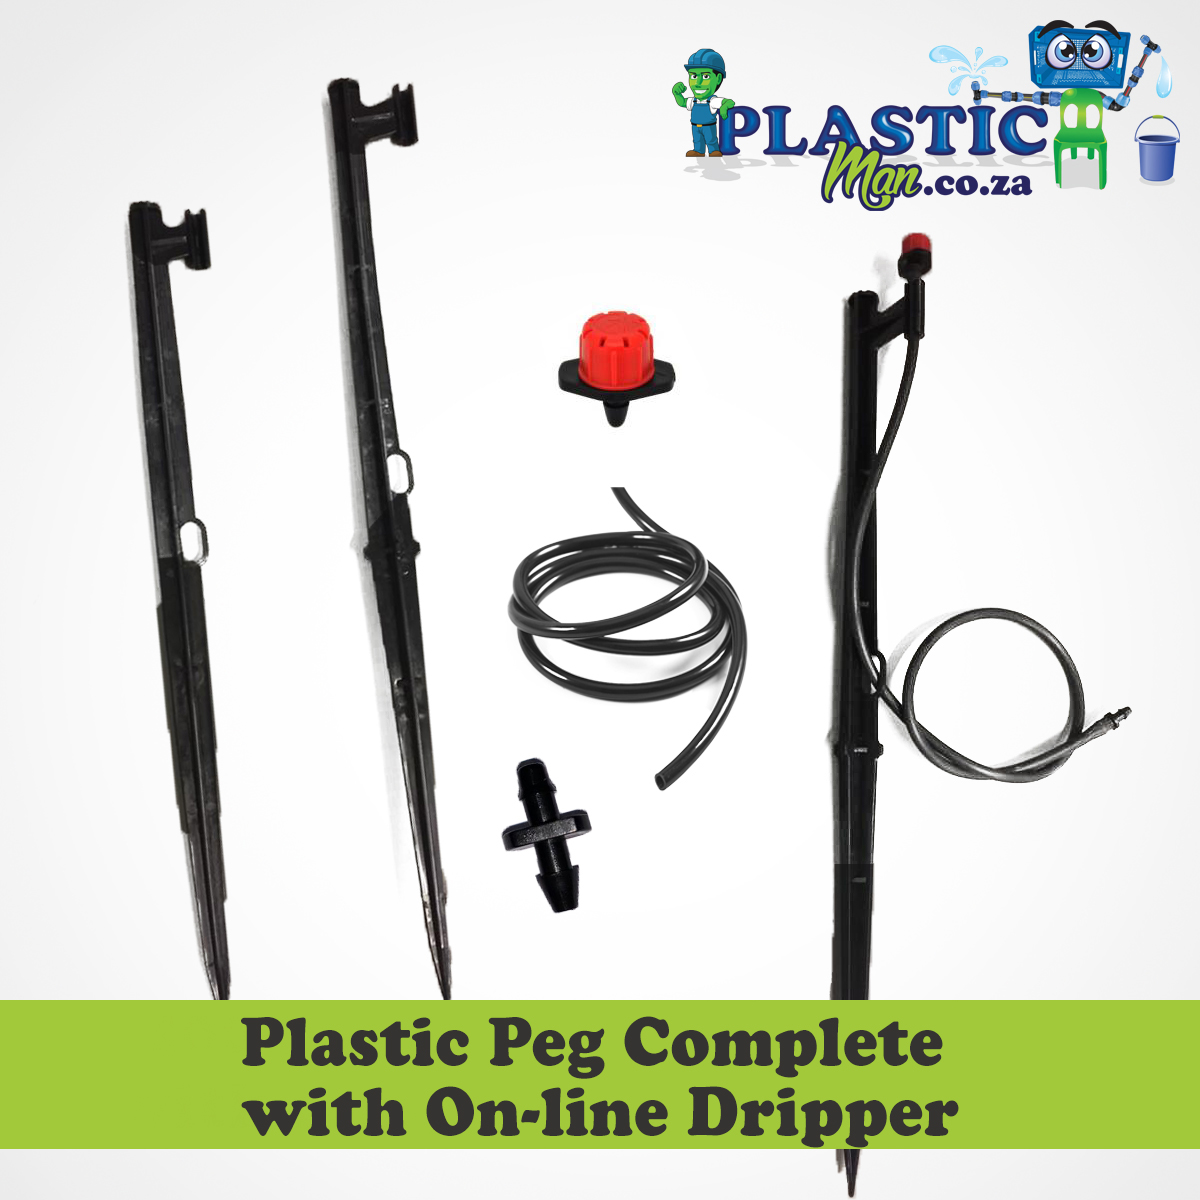 Plastic Peg with Complete on-line Dripper